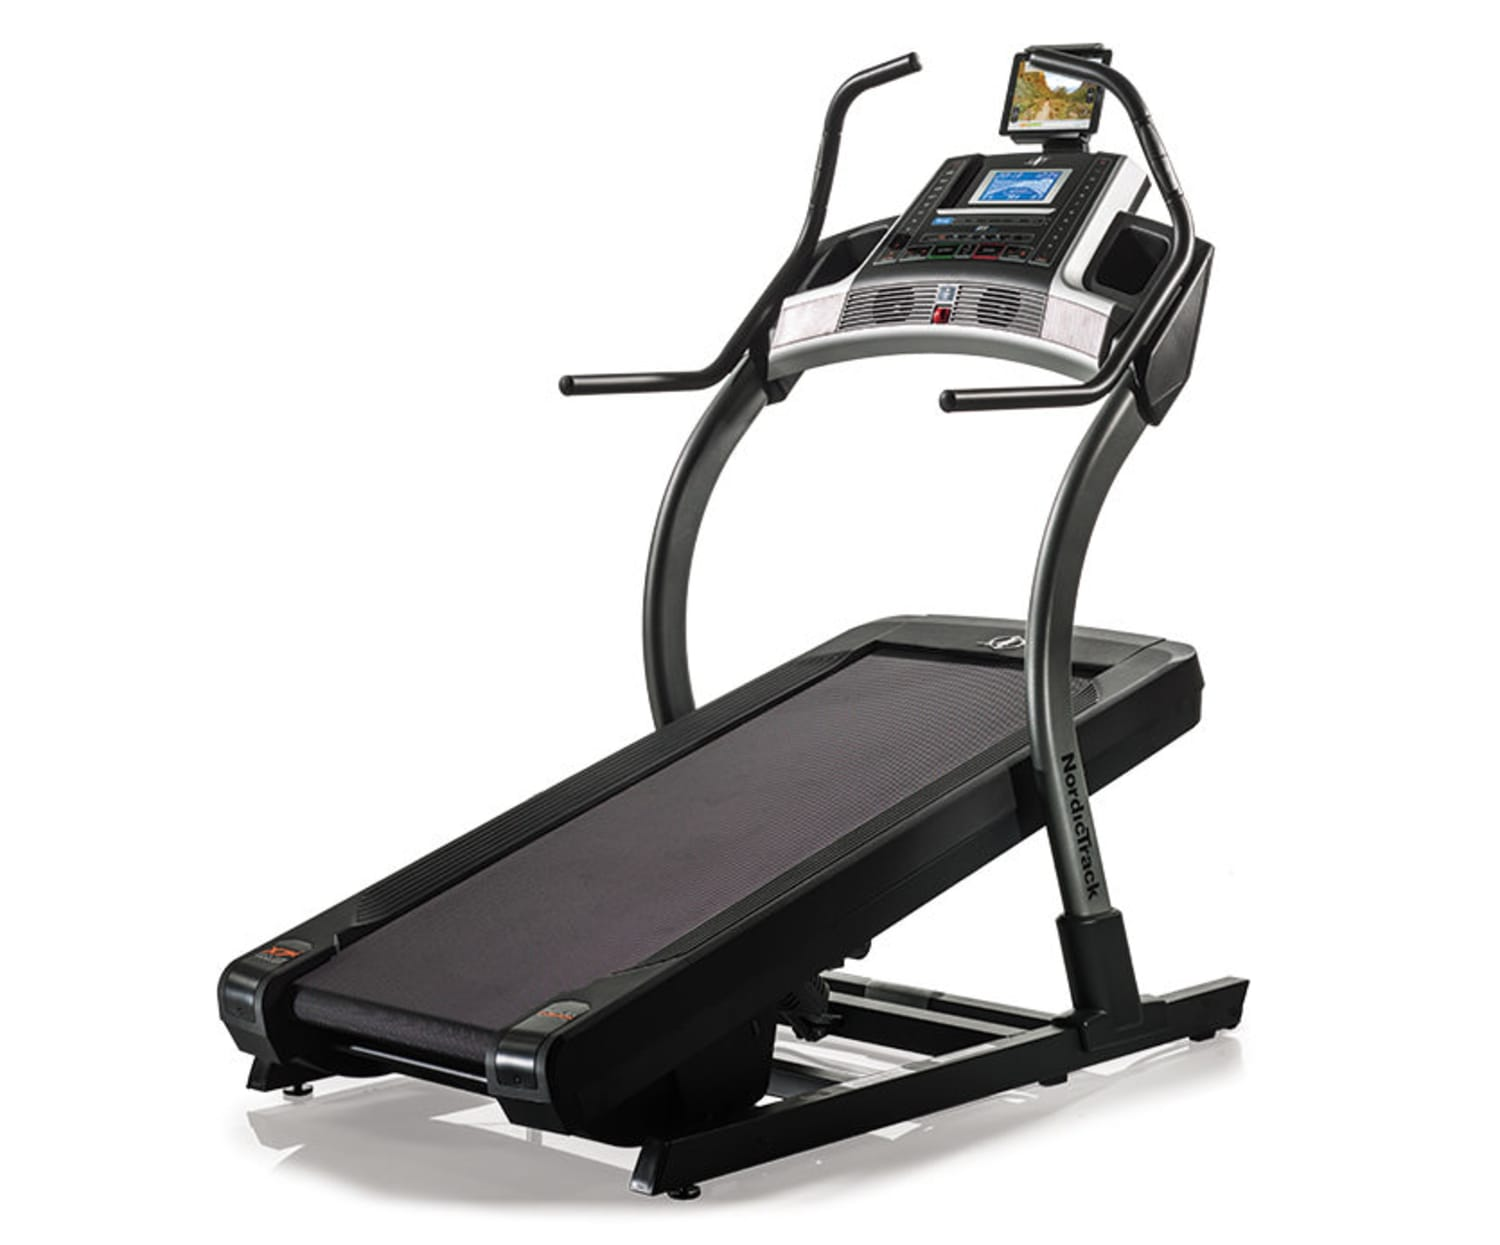 Image result for incline treadmill